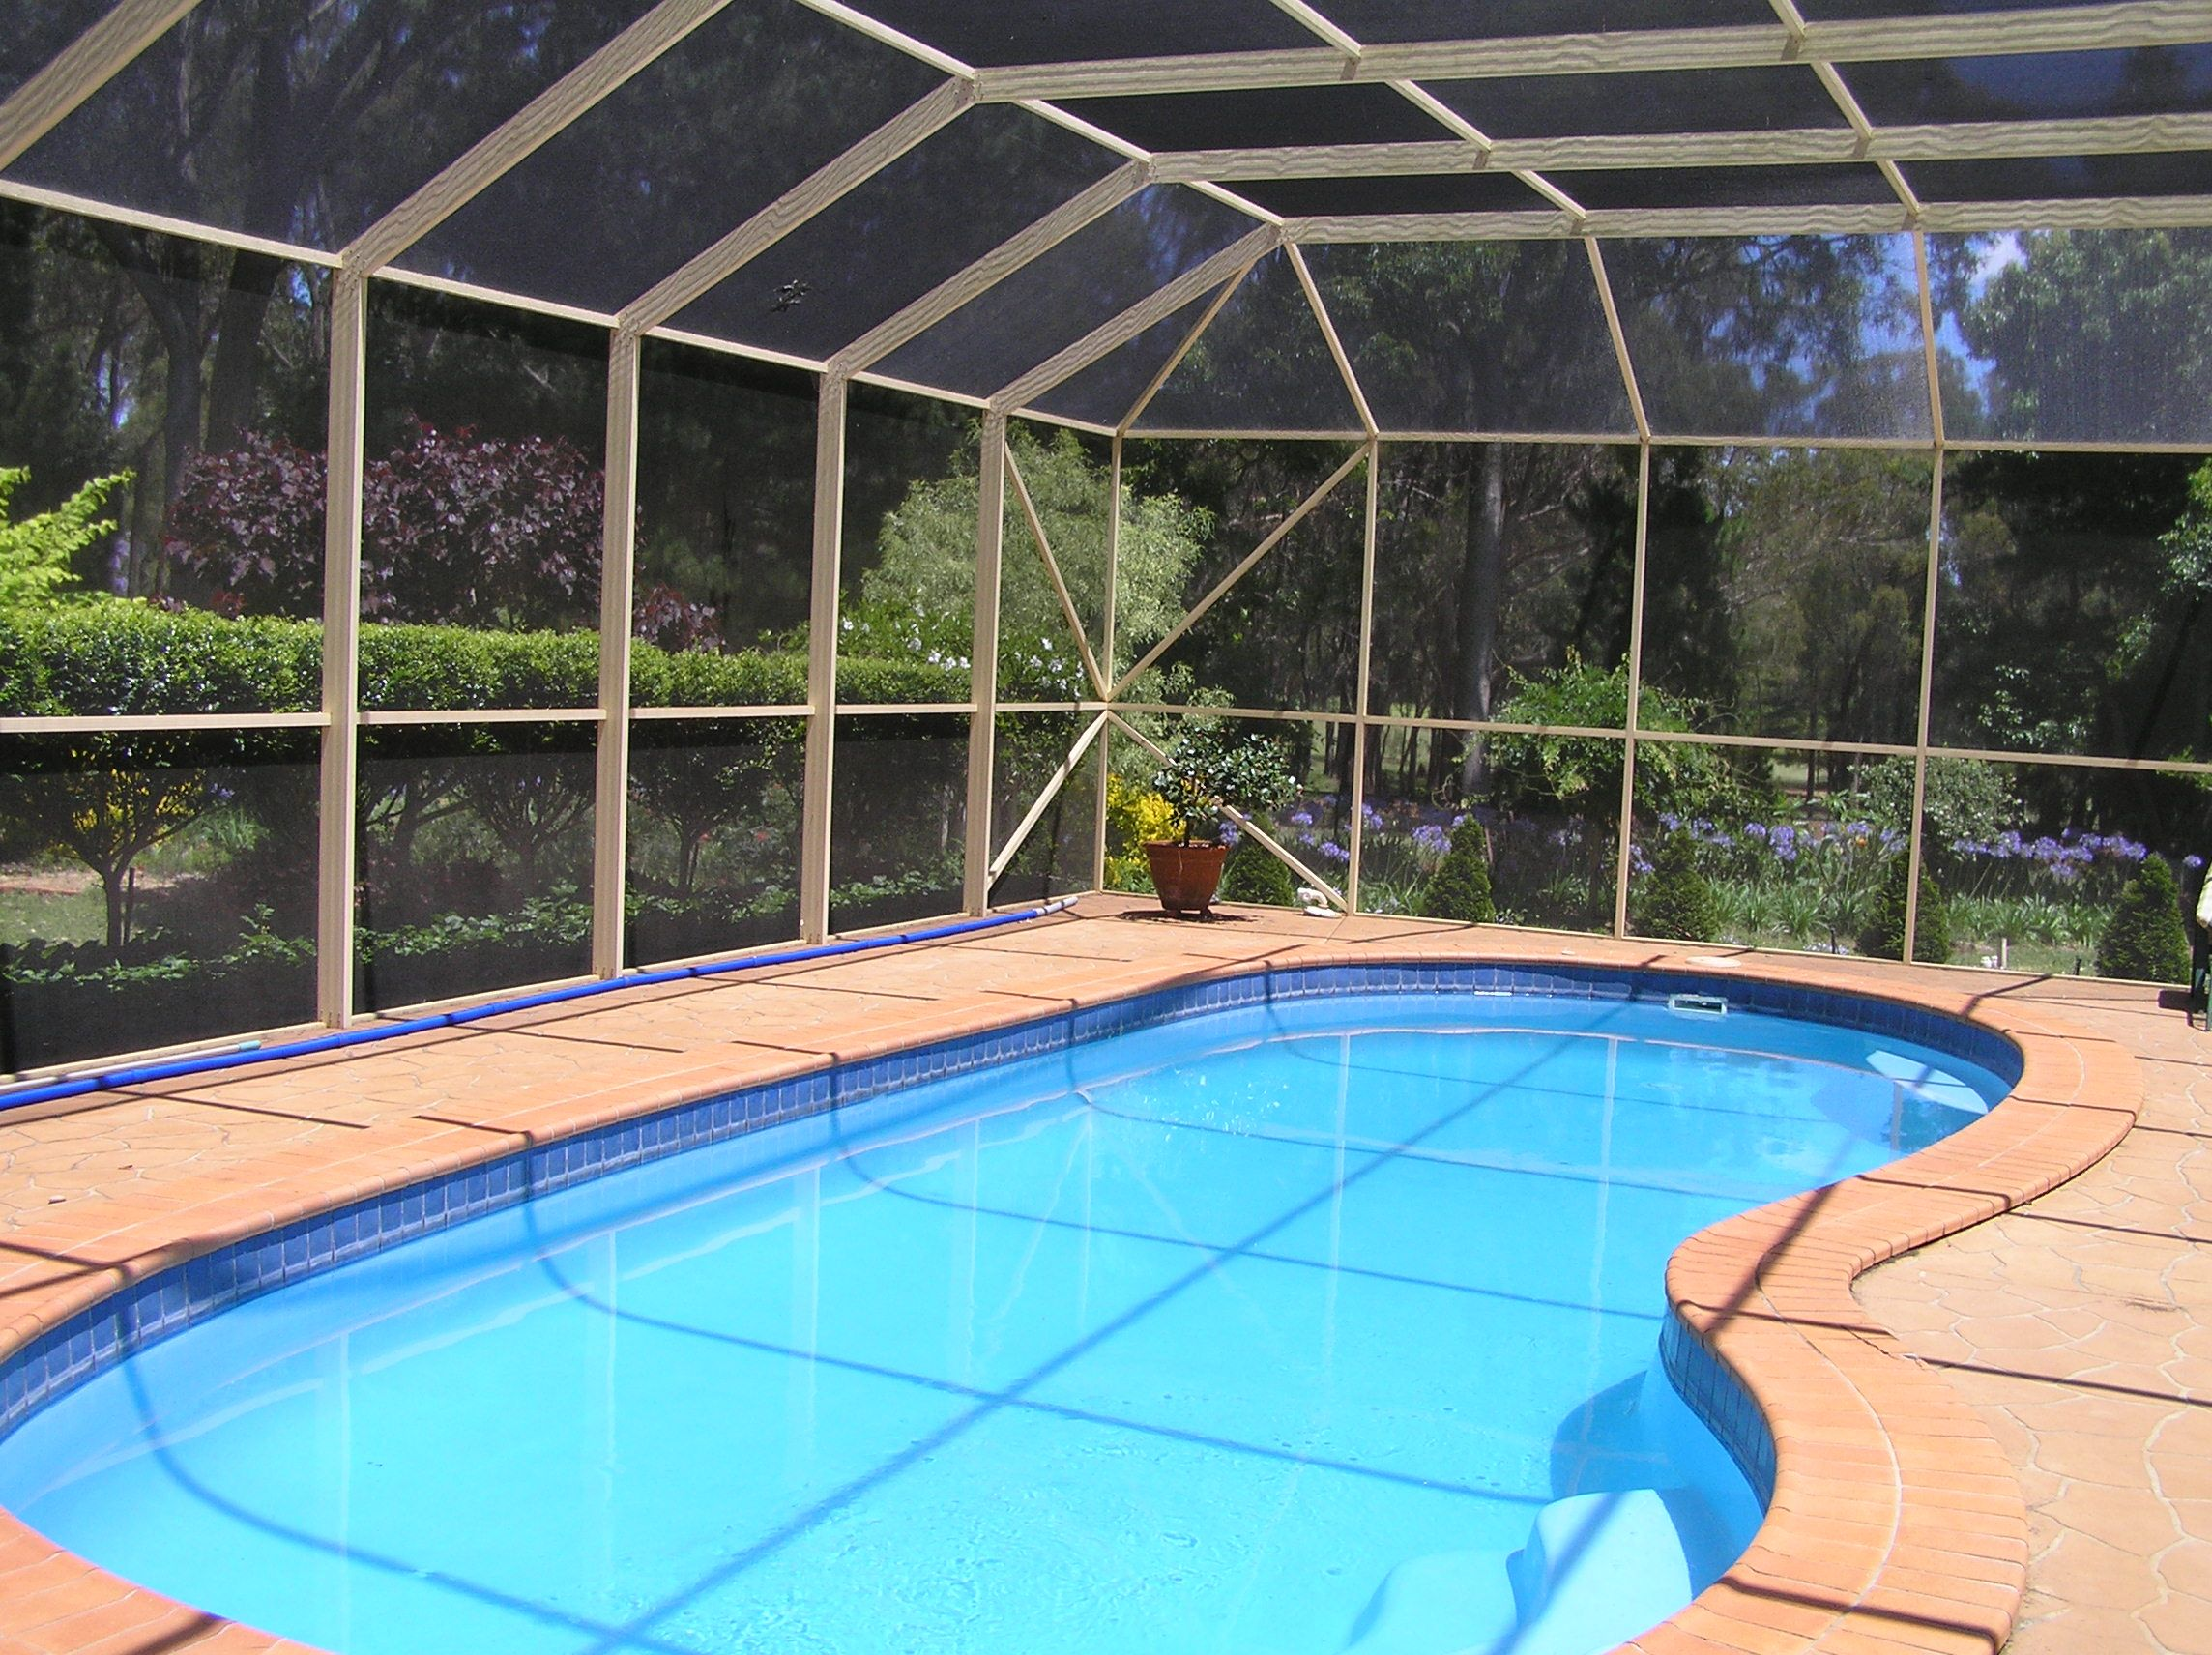 A pool enclosure to keep the bugs and debris out of the